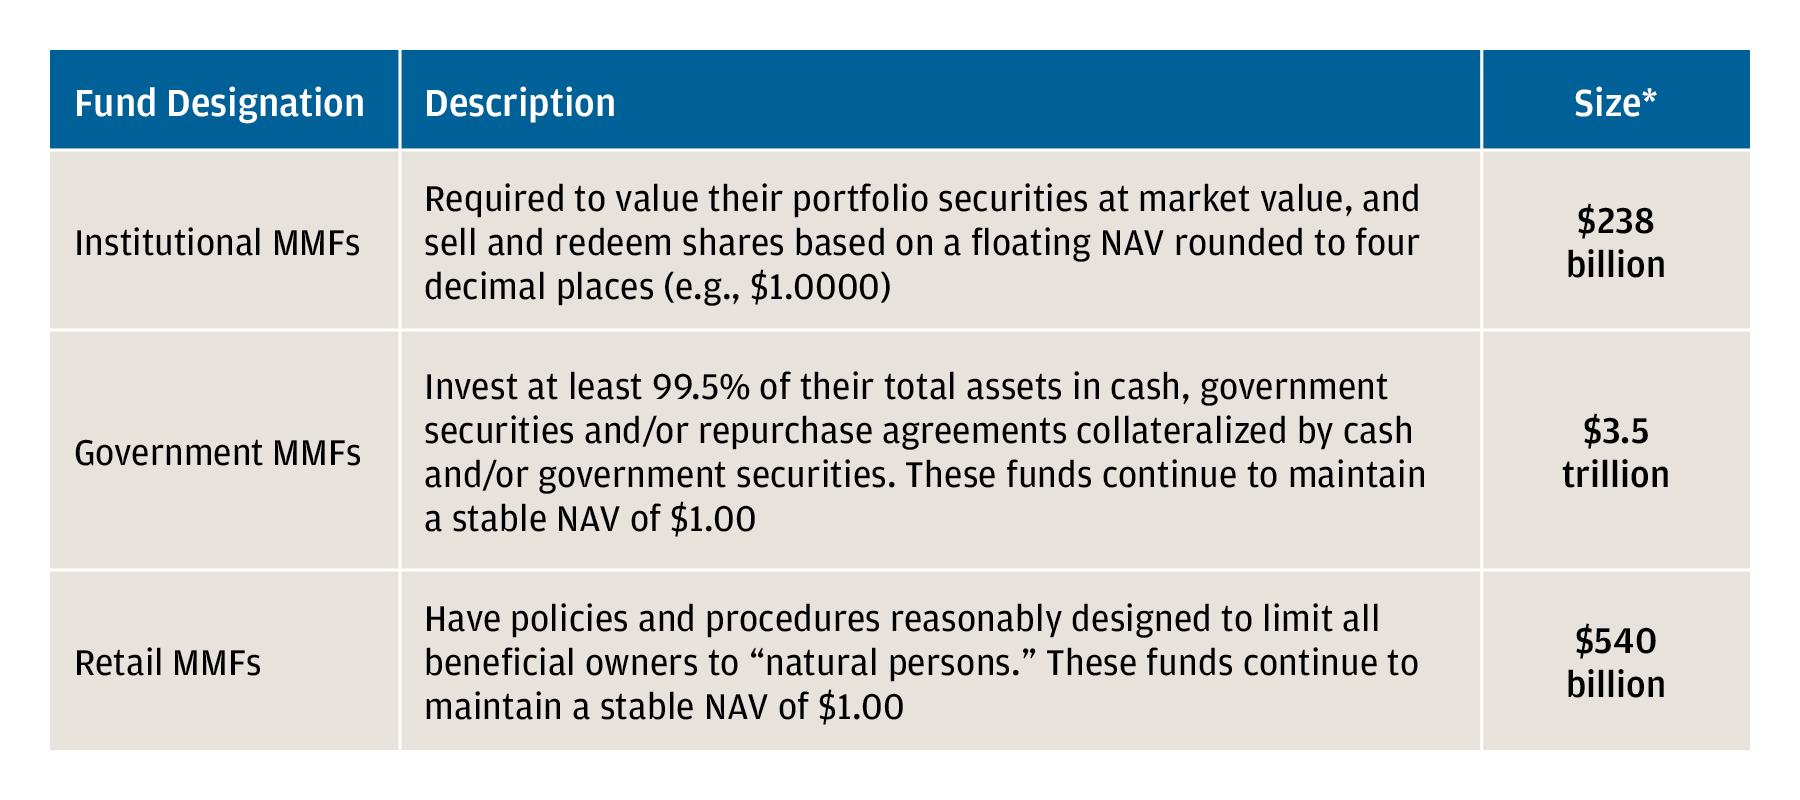 The chart shows the fund designation, description and size of the SEC fund classifications.